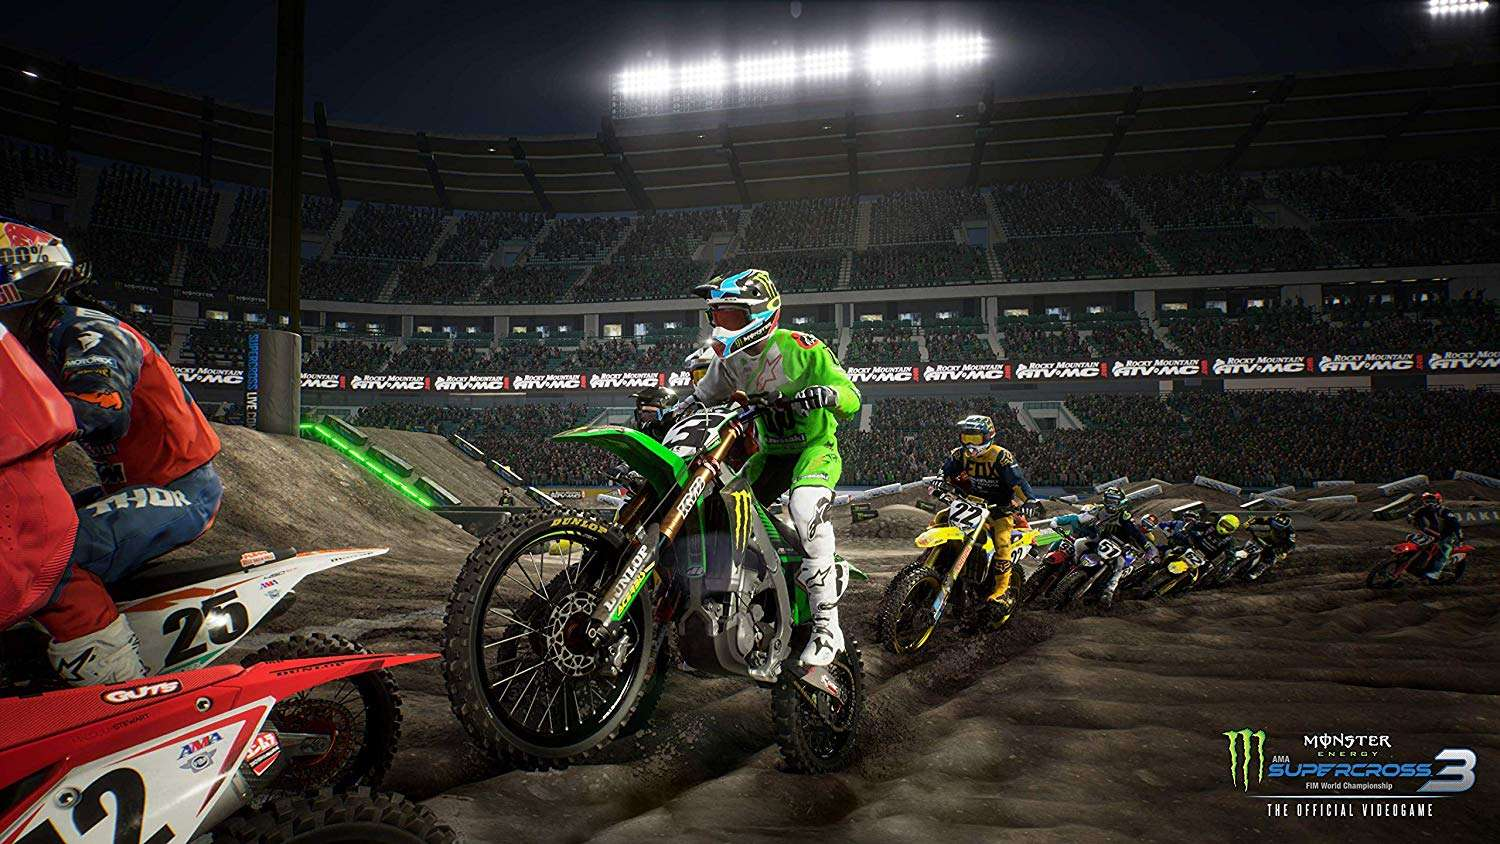 Monster Energy Supercross: The Official Videogame 3 #1